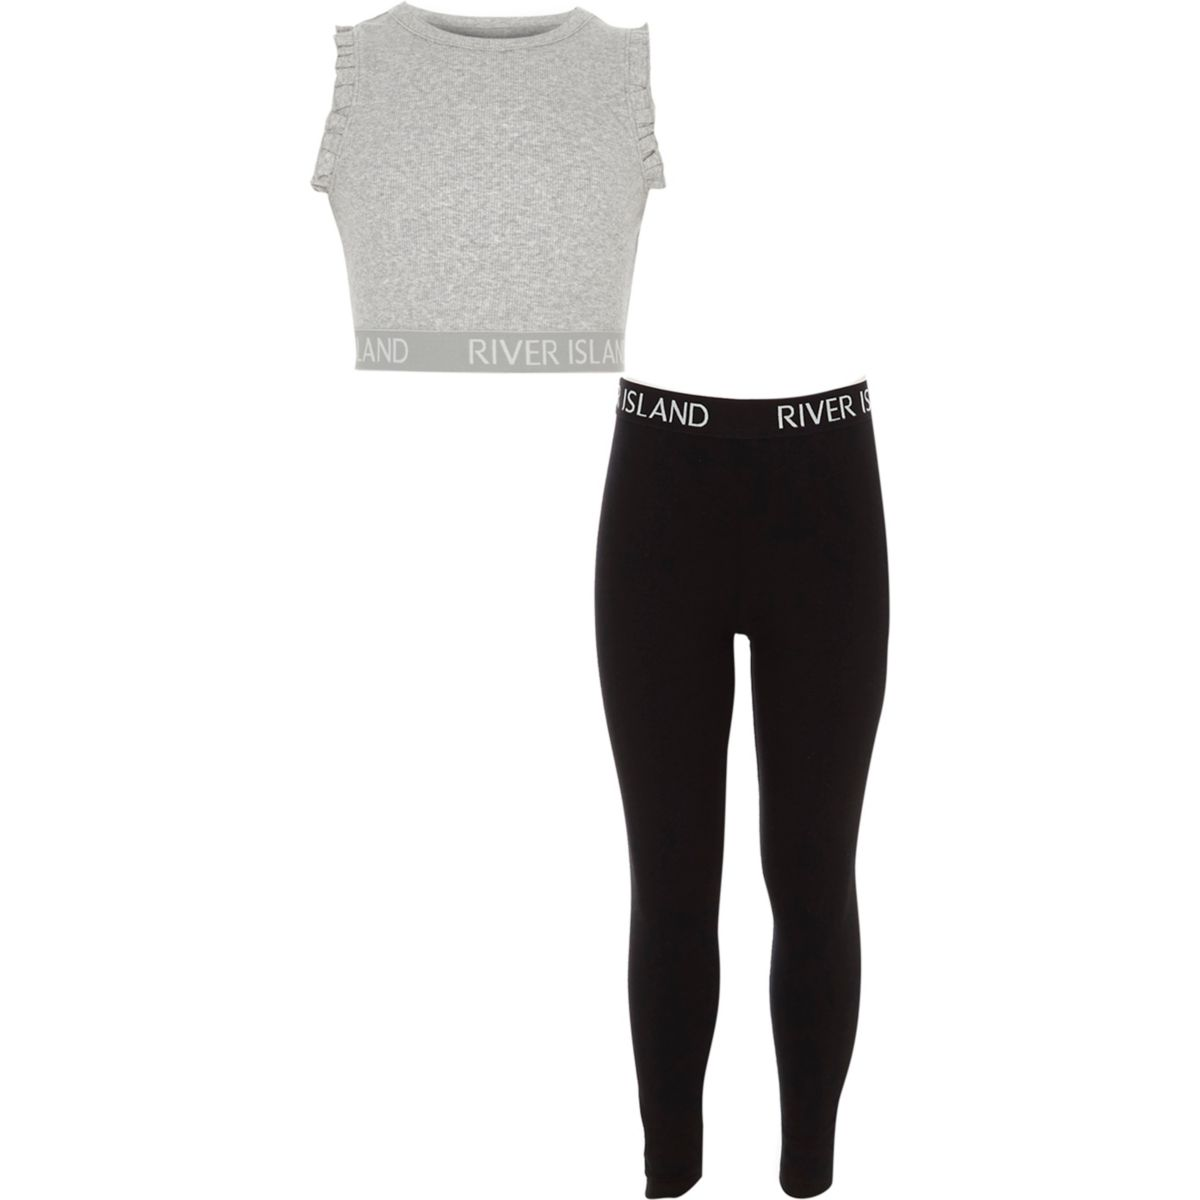 Girls RI grey cropped top and leggings outfit